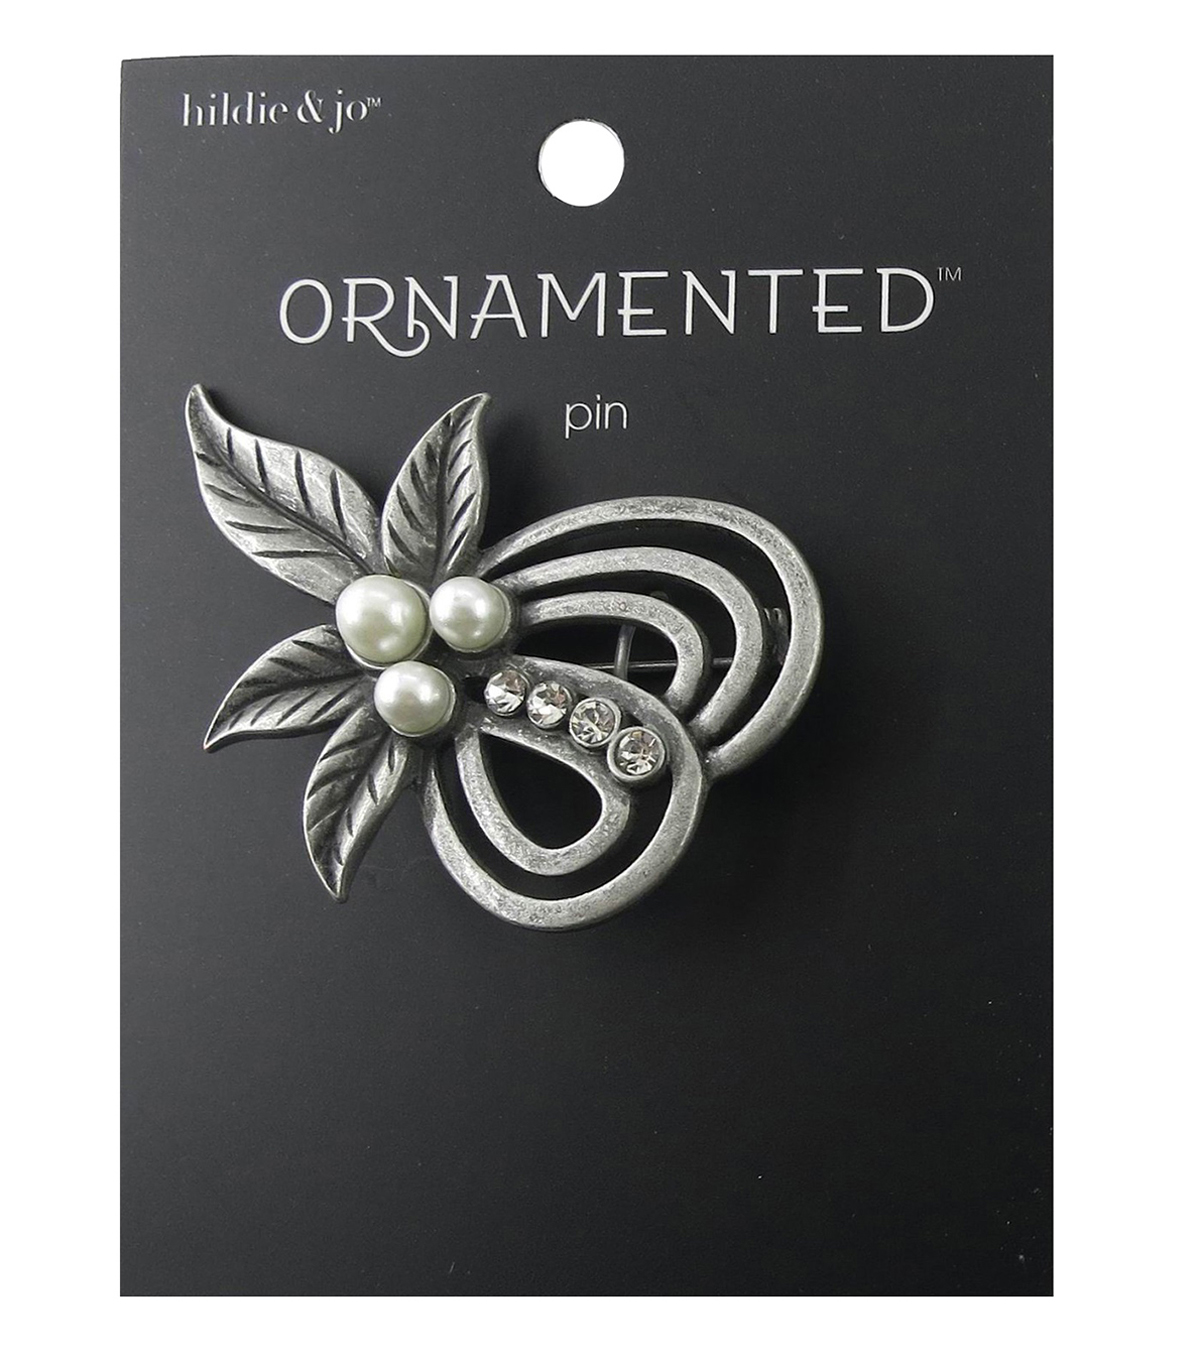 hildie & jo™ Ornamented Leaves Antique Silver Pin-Pearls & Crystal